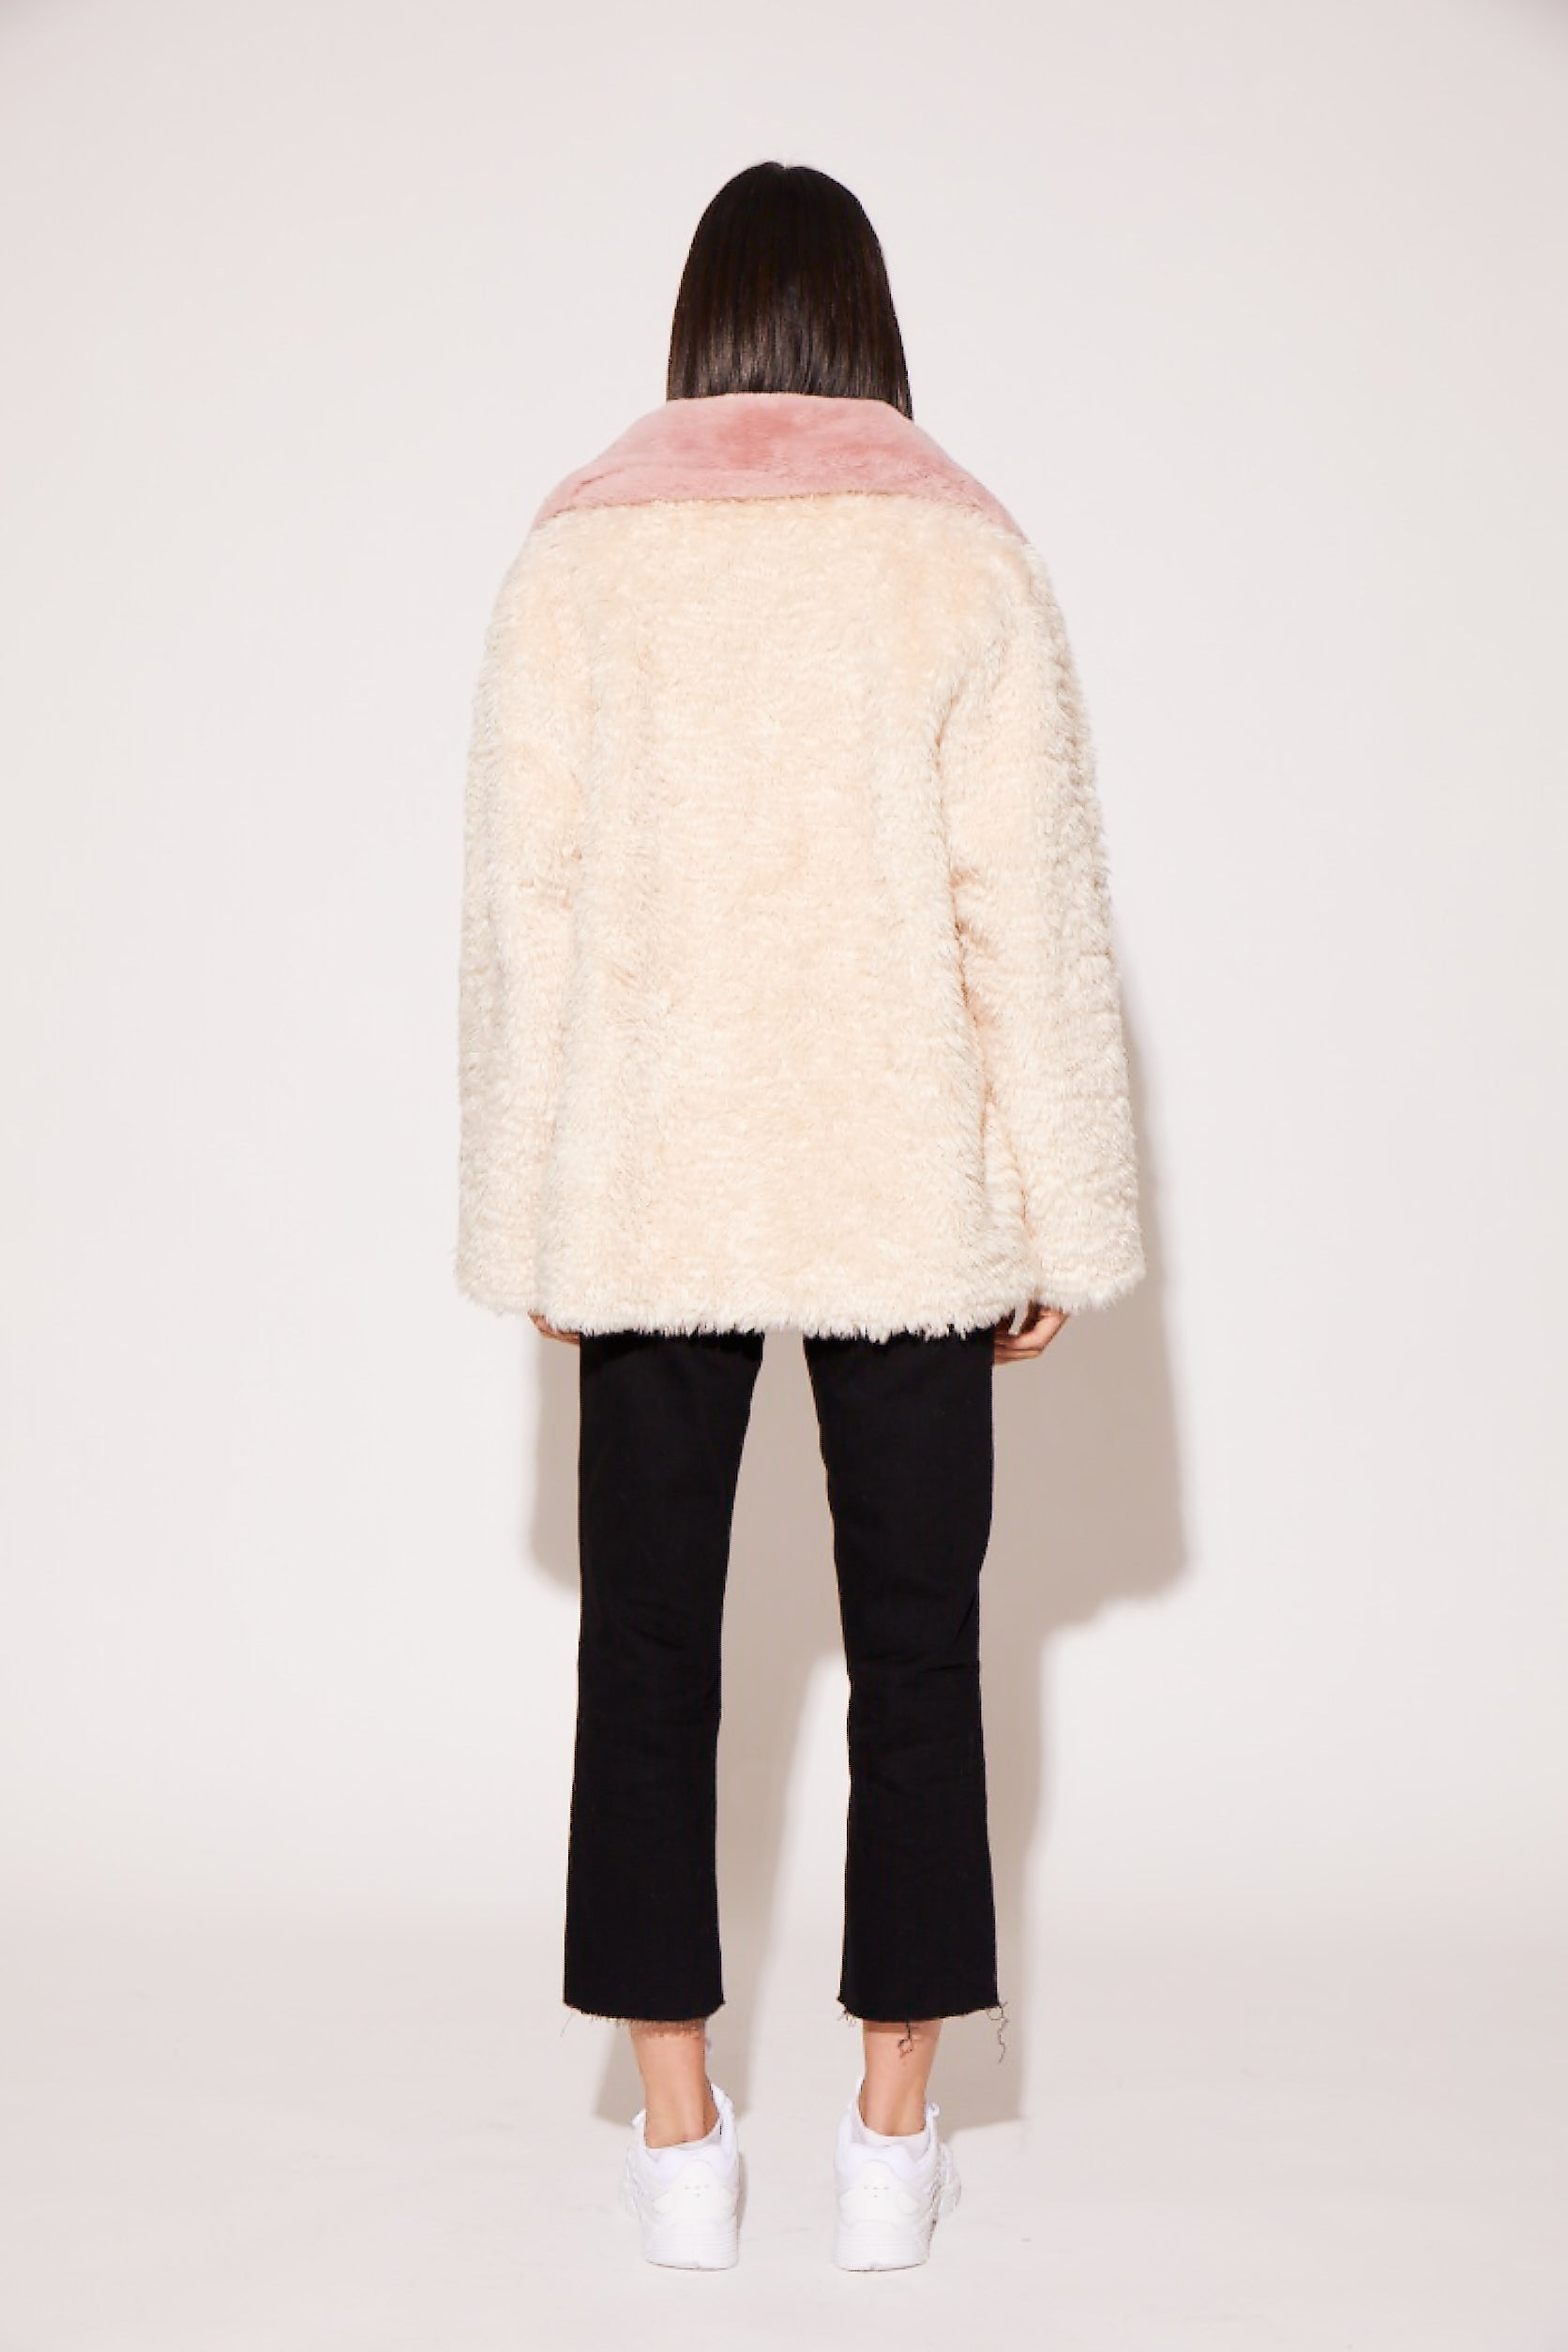 shaci cherry blossom faux fur jacket